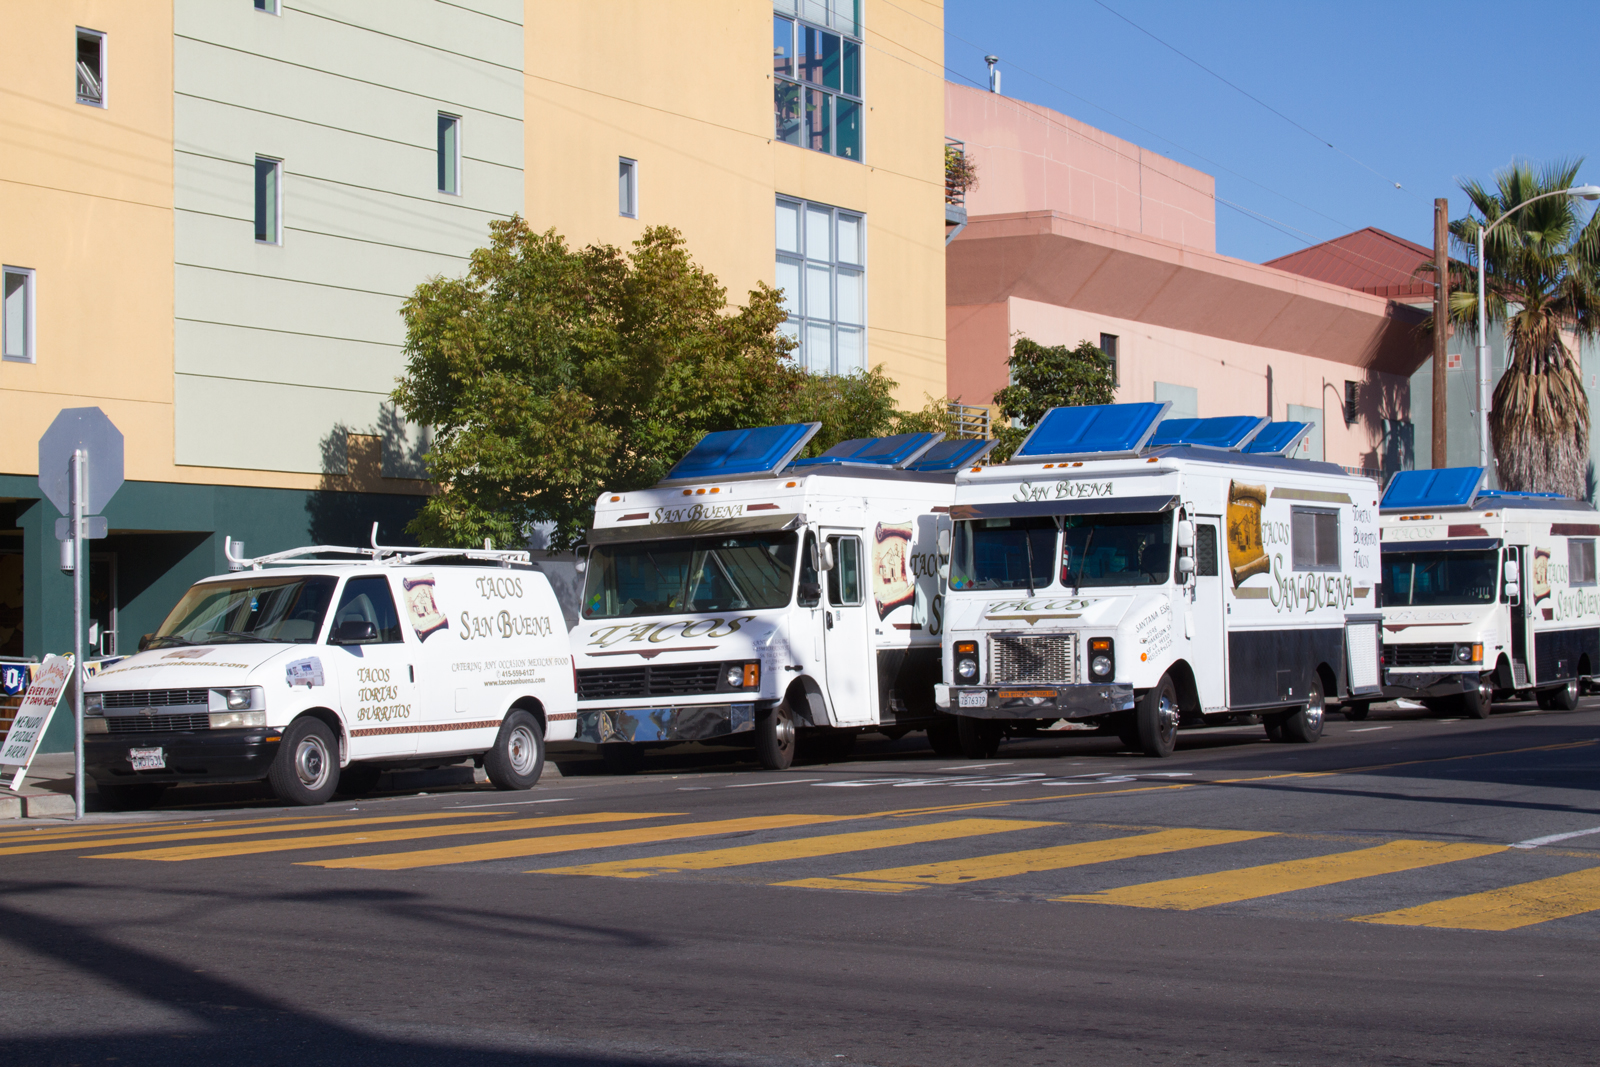 Loading up taco trucks to head out for the day. Photo by Courtney Quirin.